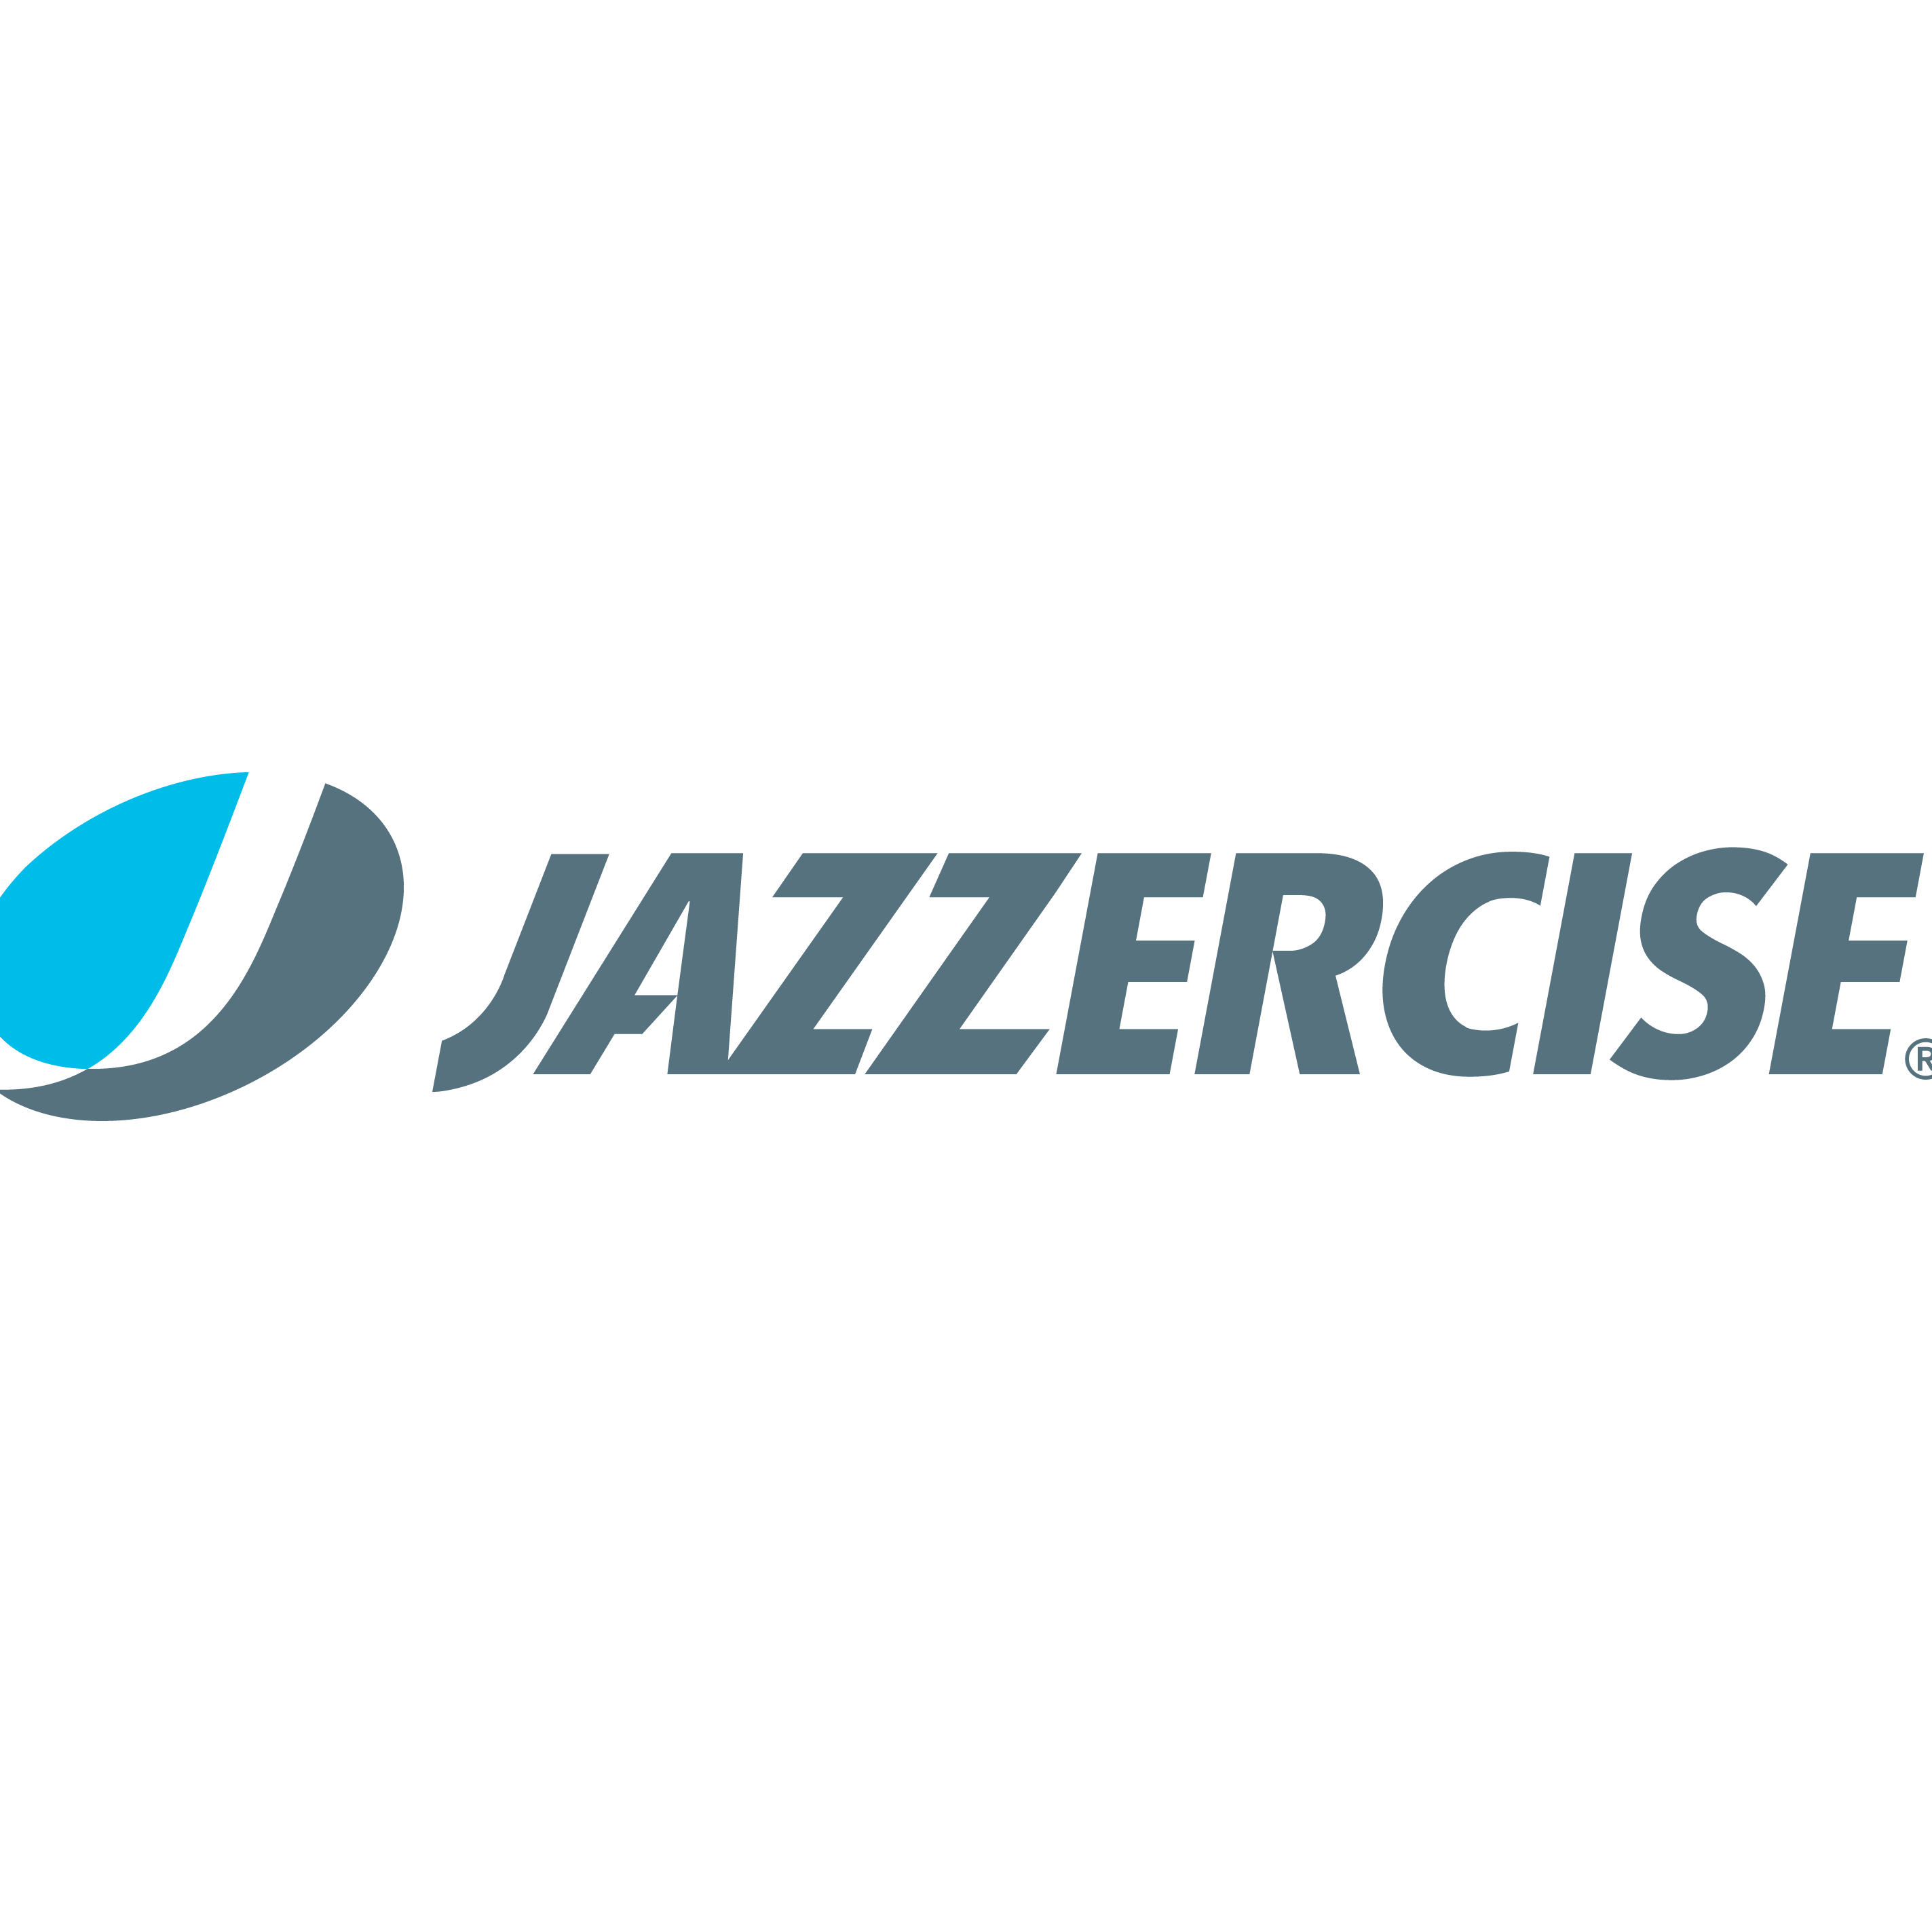 Jazzercise Kenosha Fitness Center - Kenosha, WI - Health Clubs & Gyms